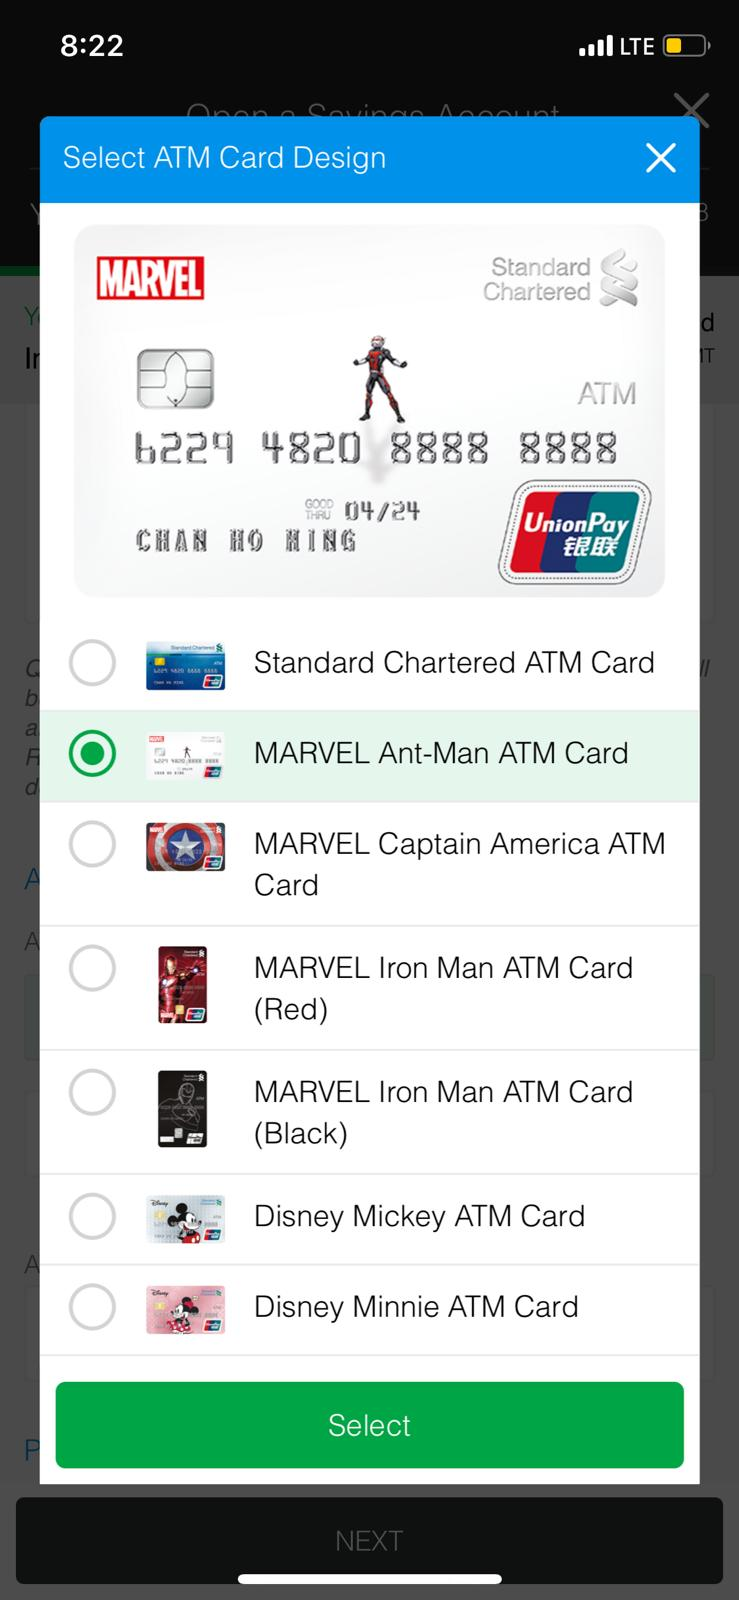 Select your desired ATM card design